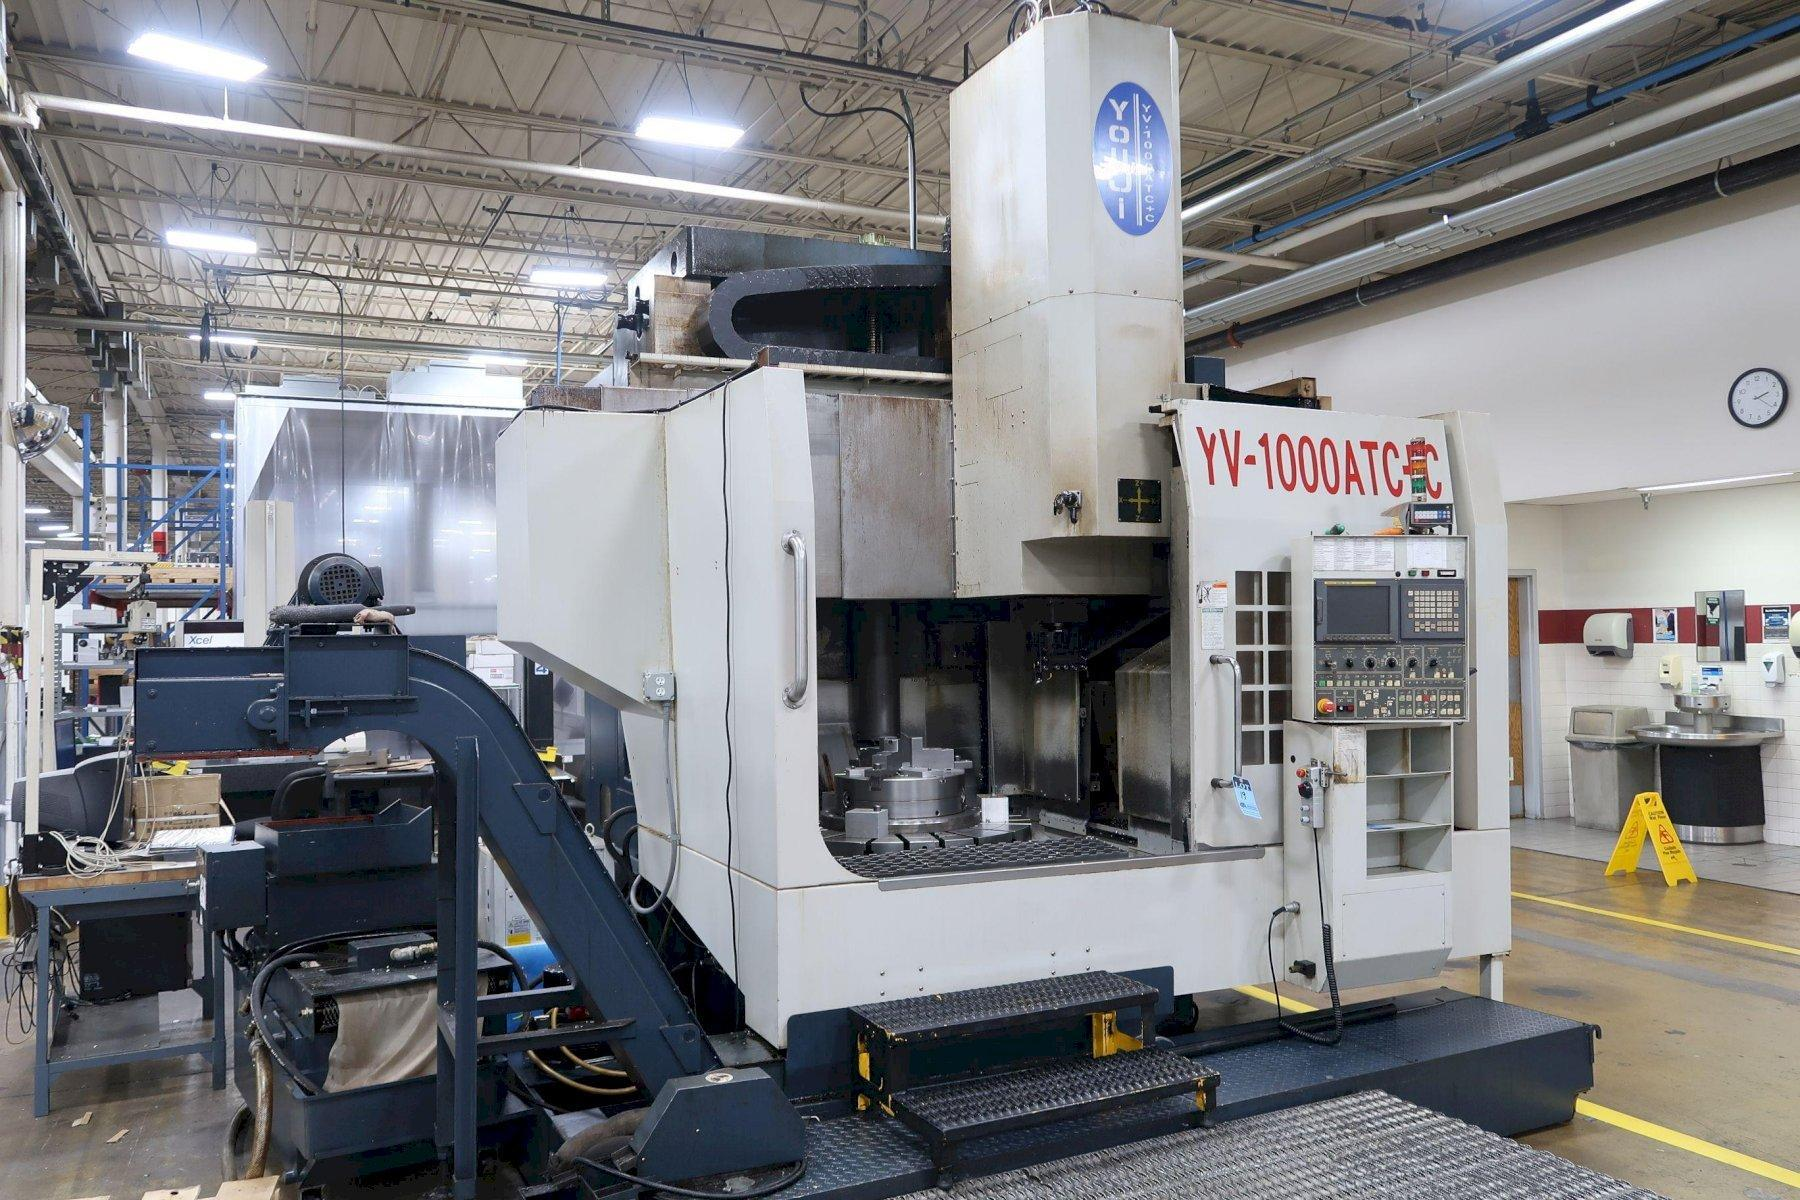 "You Ji YV1000ATC+C CNC Vertical Lathe w/Milling, Fanuc 18i-TC, 20"" Chuck, 39.4"" Table Dia, 53"" Swing, 50 Taper, C-Axis, 16 ATC, Gearbox, Chiller, 2008"